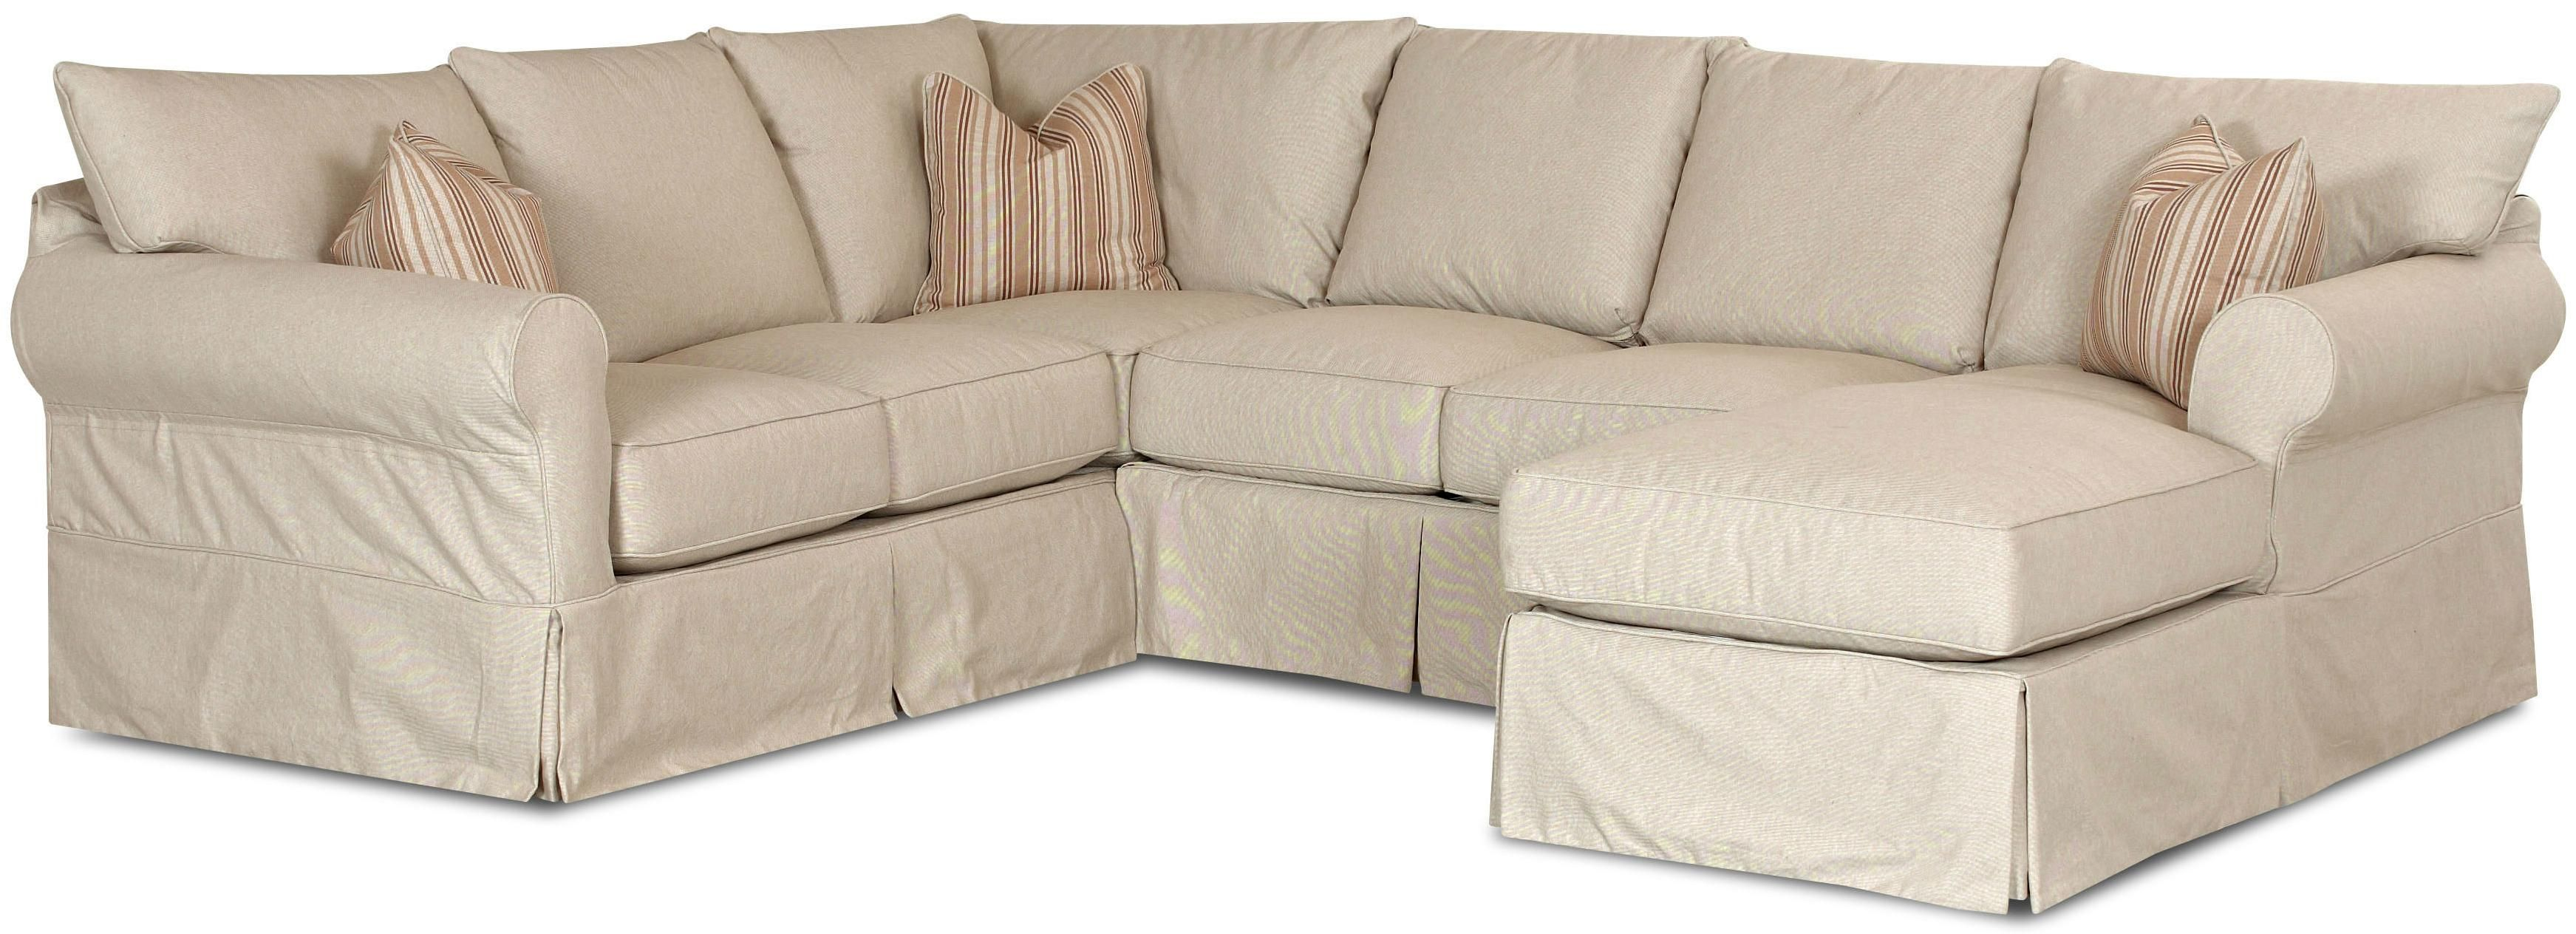 10 Slip Covers For Sectional Sofas Most Of The Brilliant And Also Lovely Sectional Couch Cover Sectional Sofa Slipcovers Sectional Sofa With Chaise